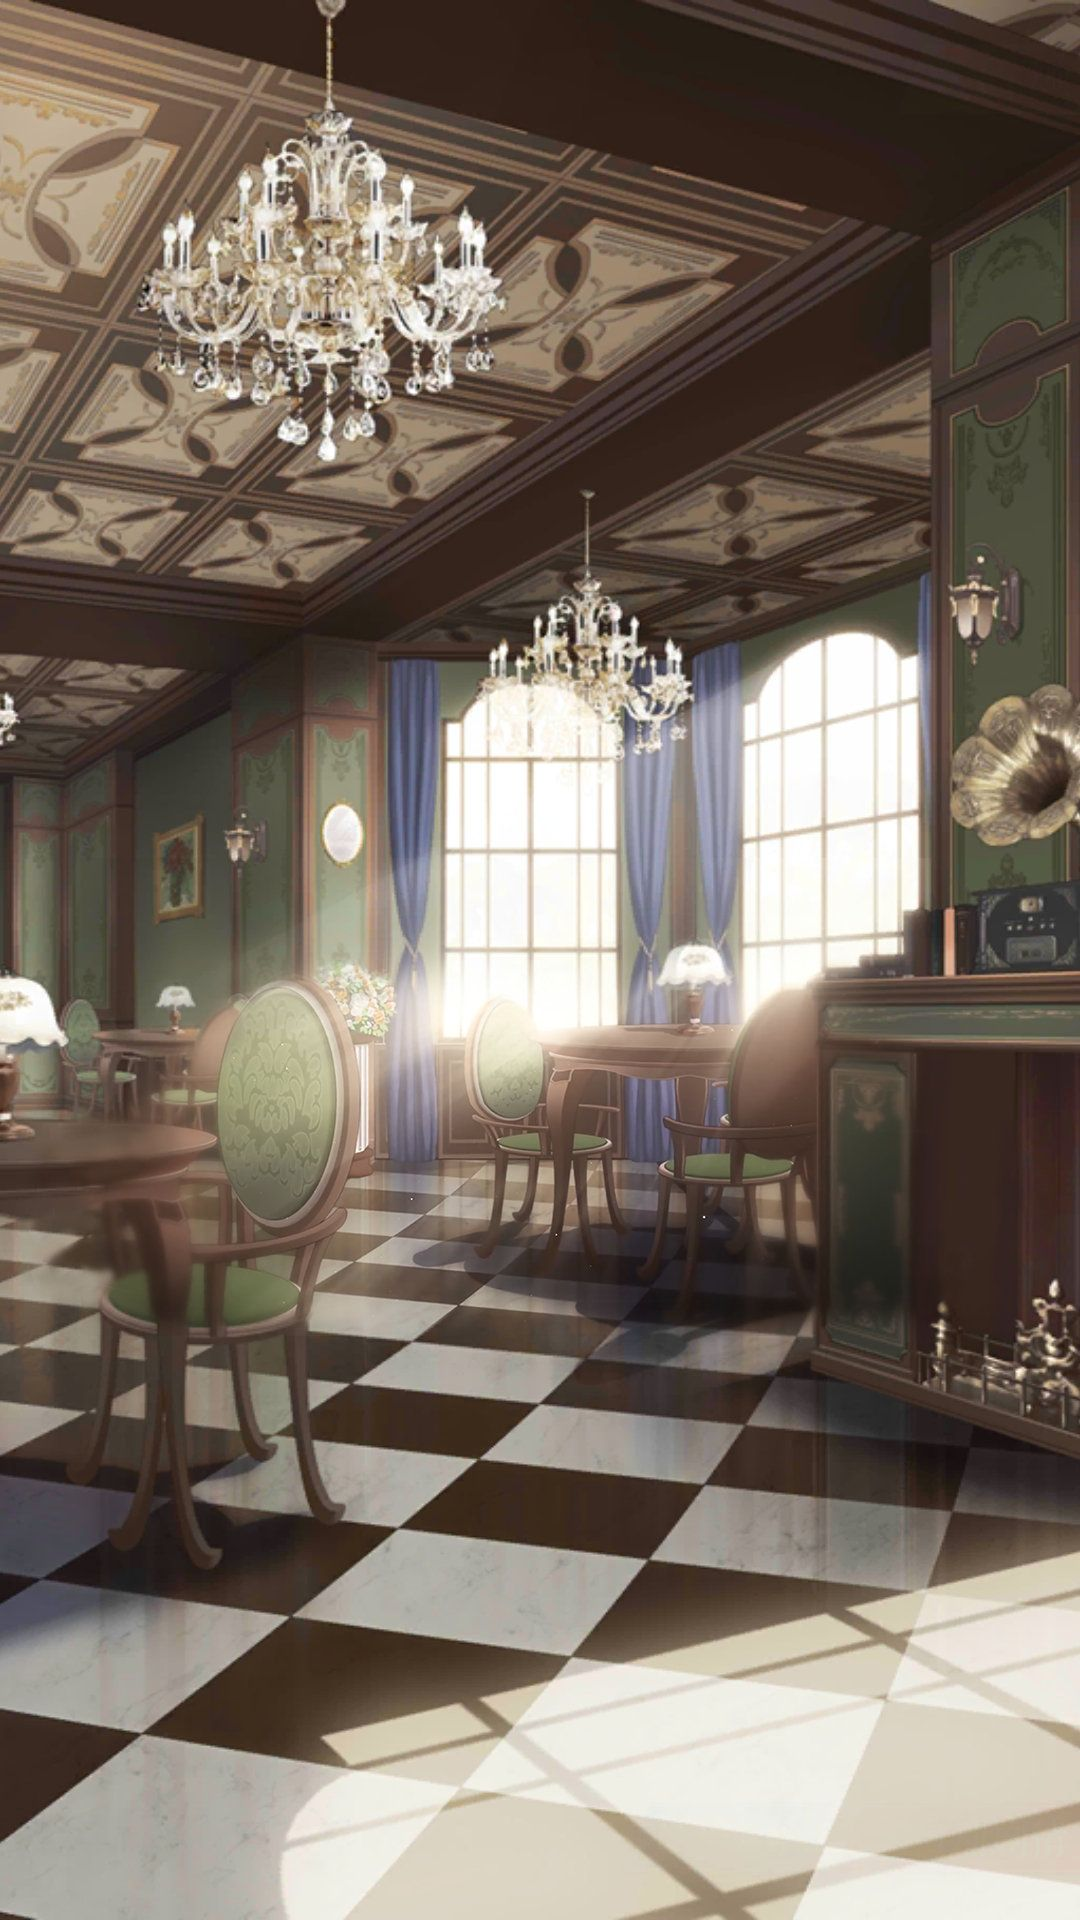 Anime Dining Room : anime, dining, Kanada, 恋与制作人, (Love, Producer), Anime, Scenery,, Places,, Scenery, Wallpaper